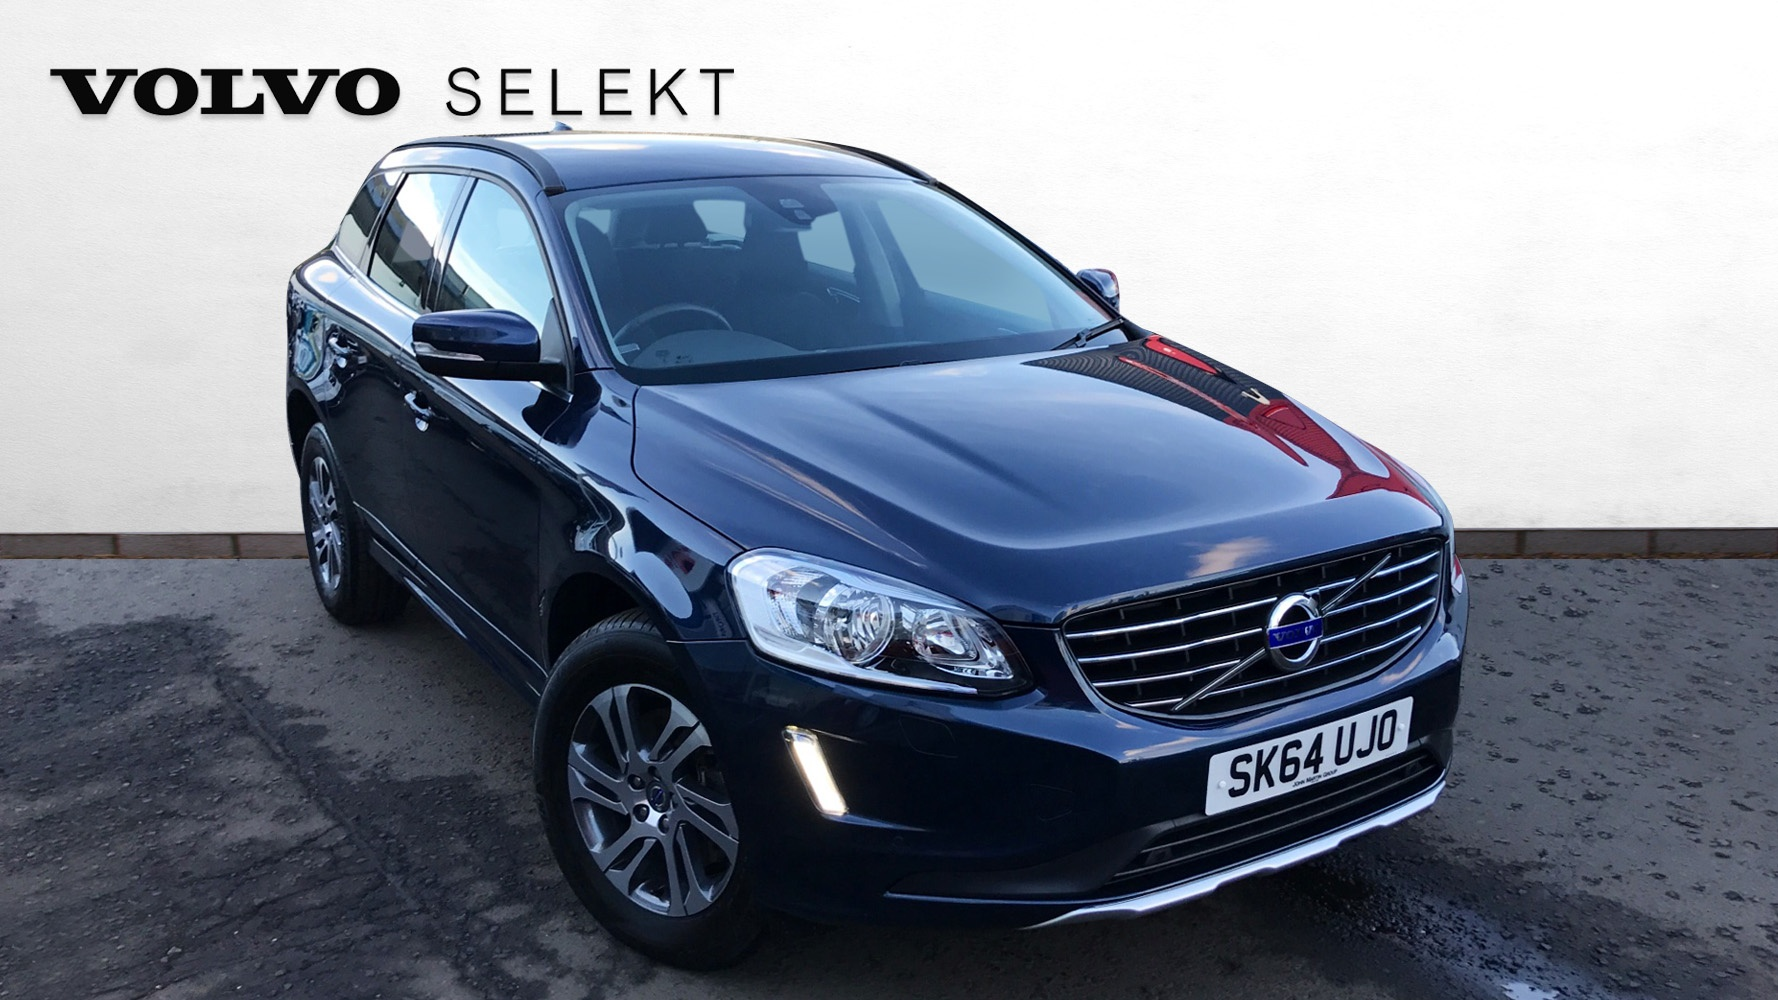 volvo xc60 d5 awd se nav used vehicle by murray sighthill edinburgh. Black Bedroom Furniture Sets. Home Design Ideas